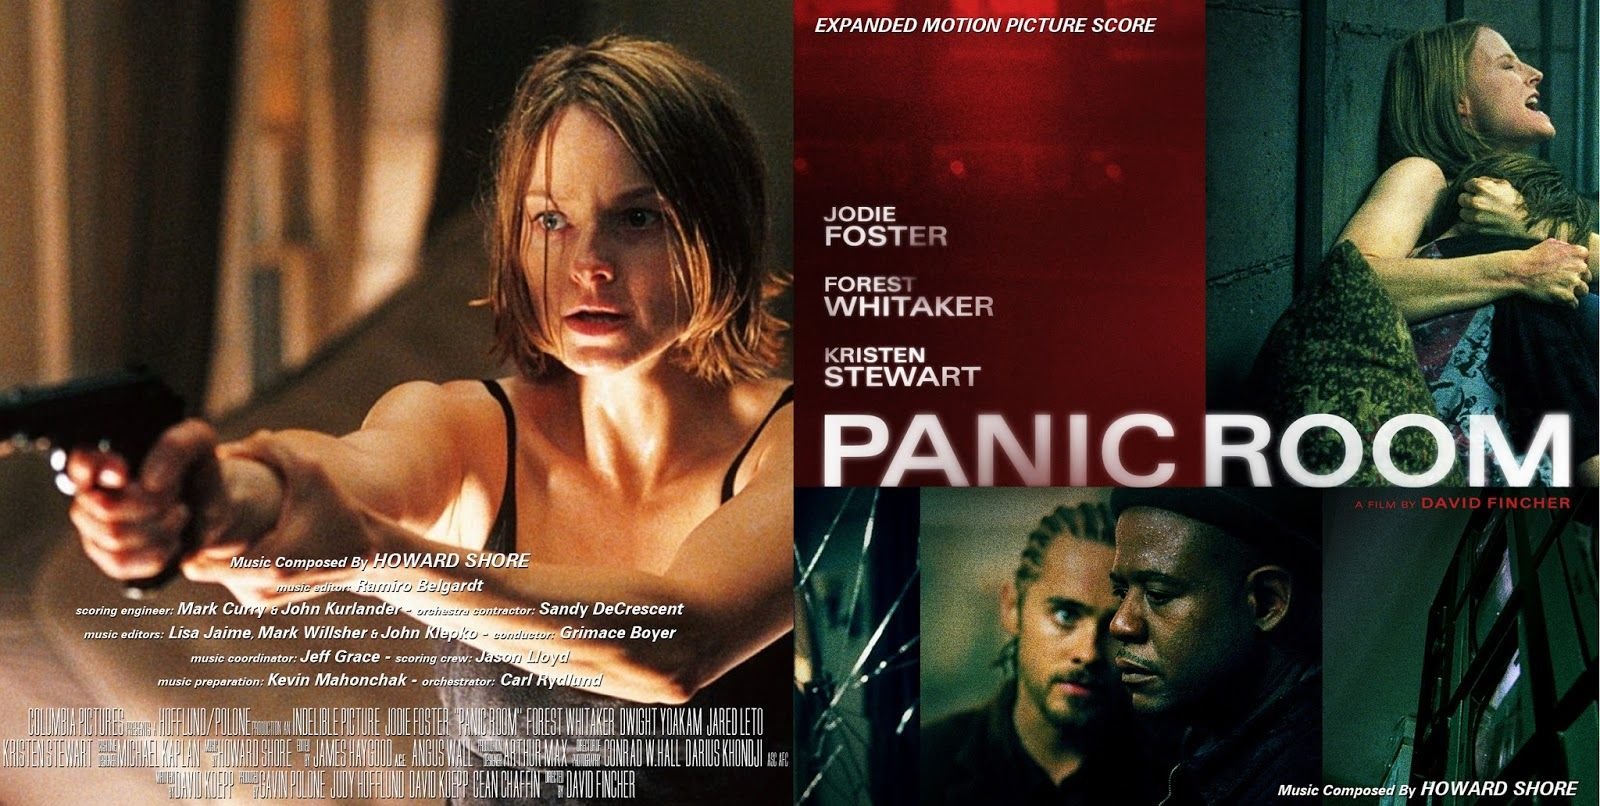 85 Panic Room Stars Madonna As Sarah Altman Anne Conway As Meg Altman And Forest Whitaker As Burnham The Orig Forest Whitaker Jodie Foster Panic Rooms